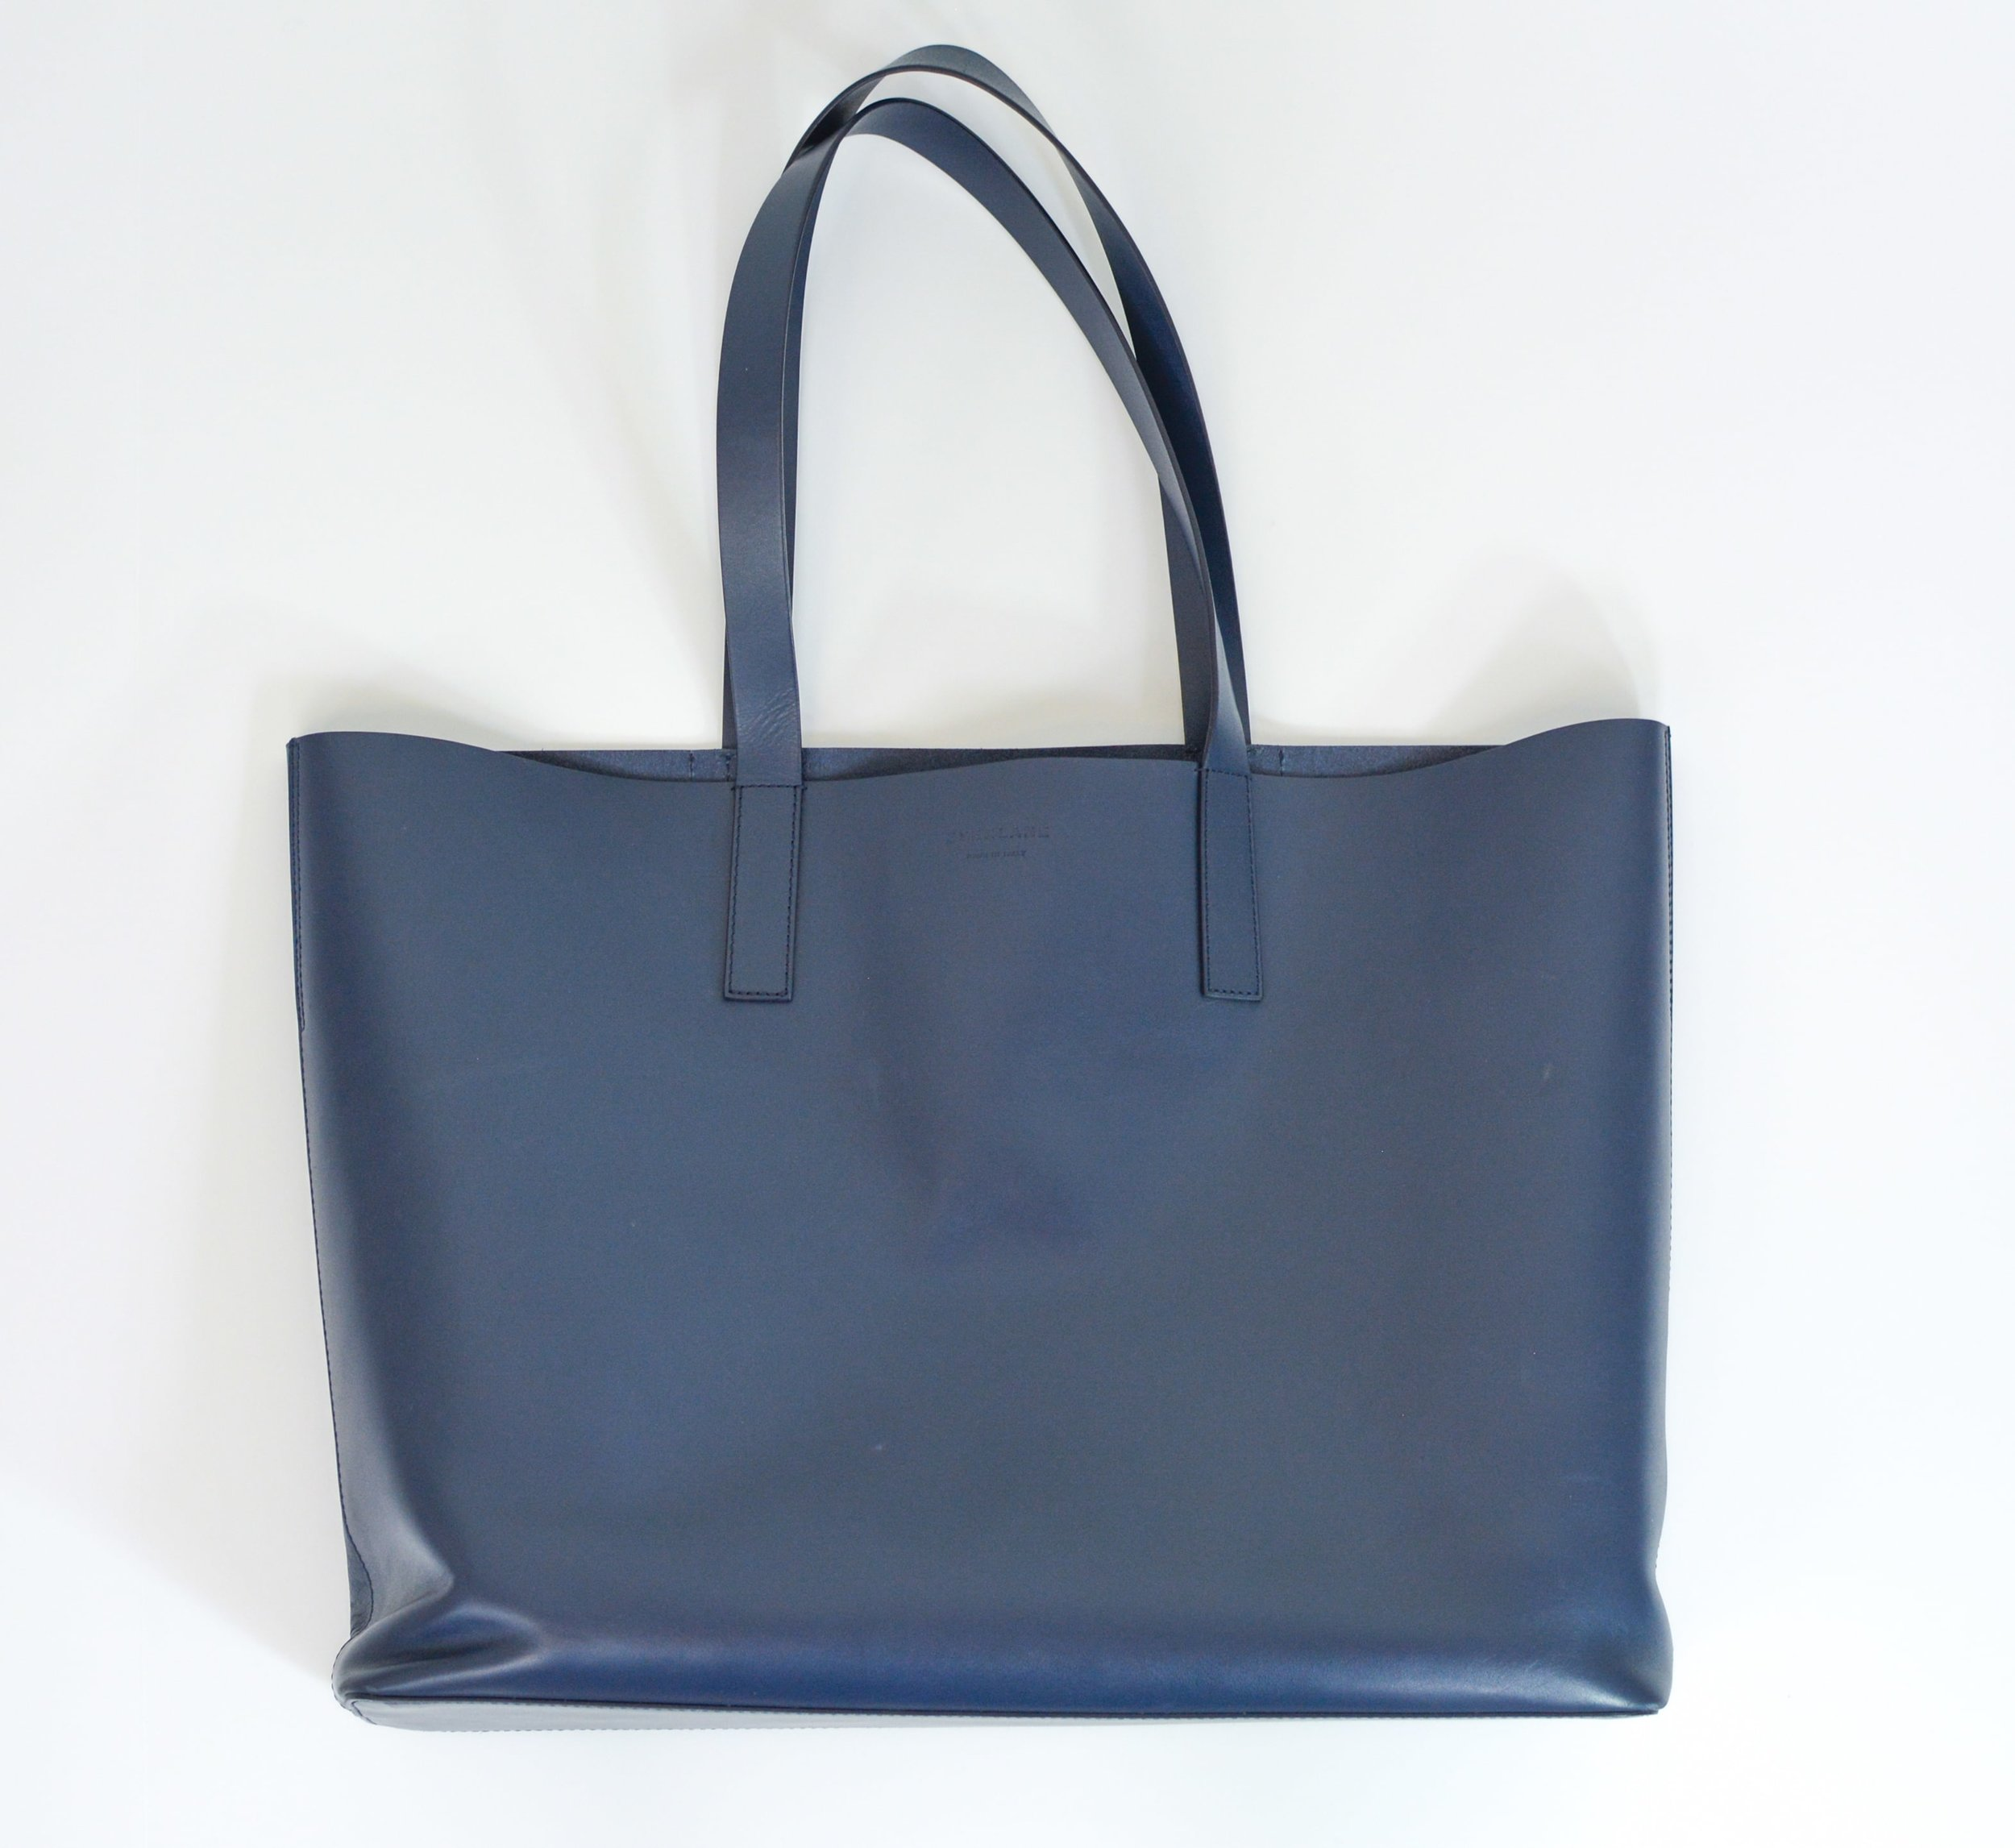 Everlane Review The Day Market Tote (2 of 4)-min.jpg